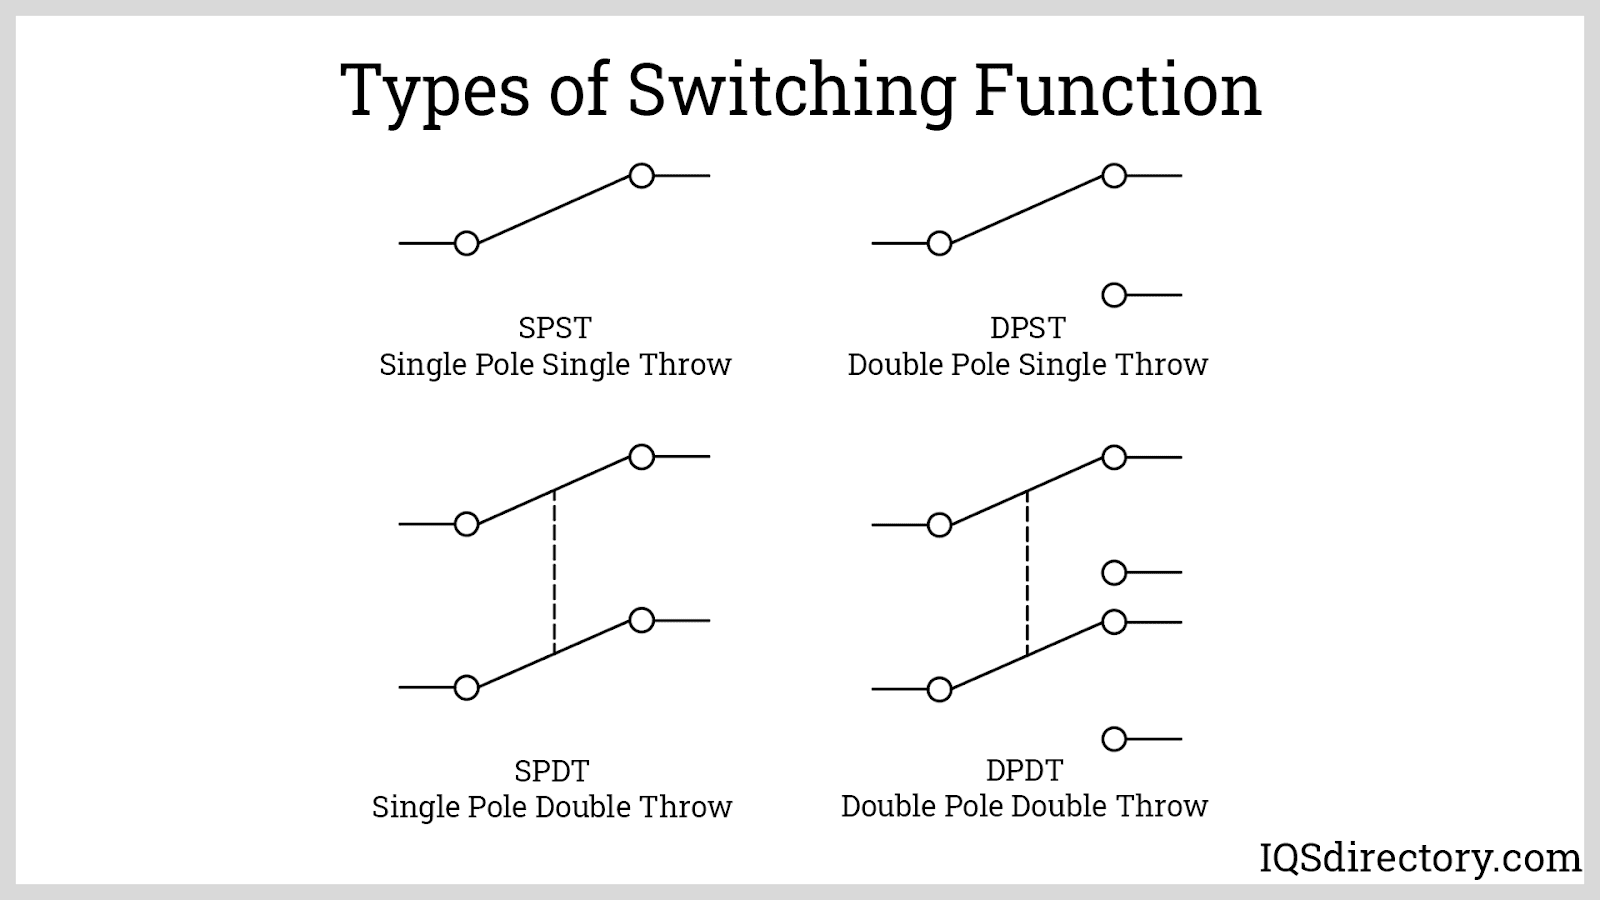 Types of Switching Function